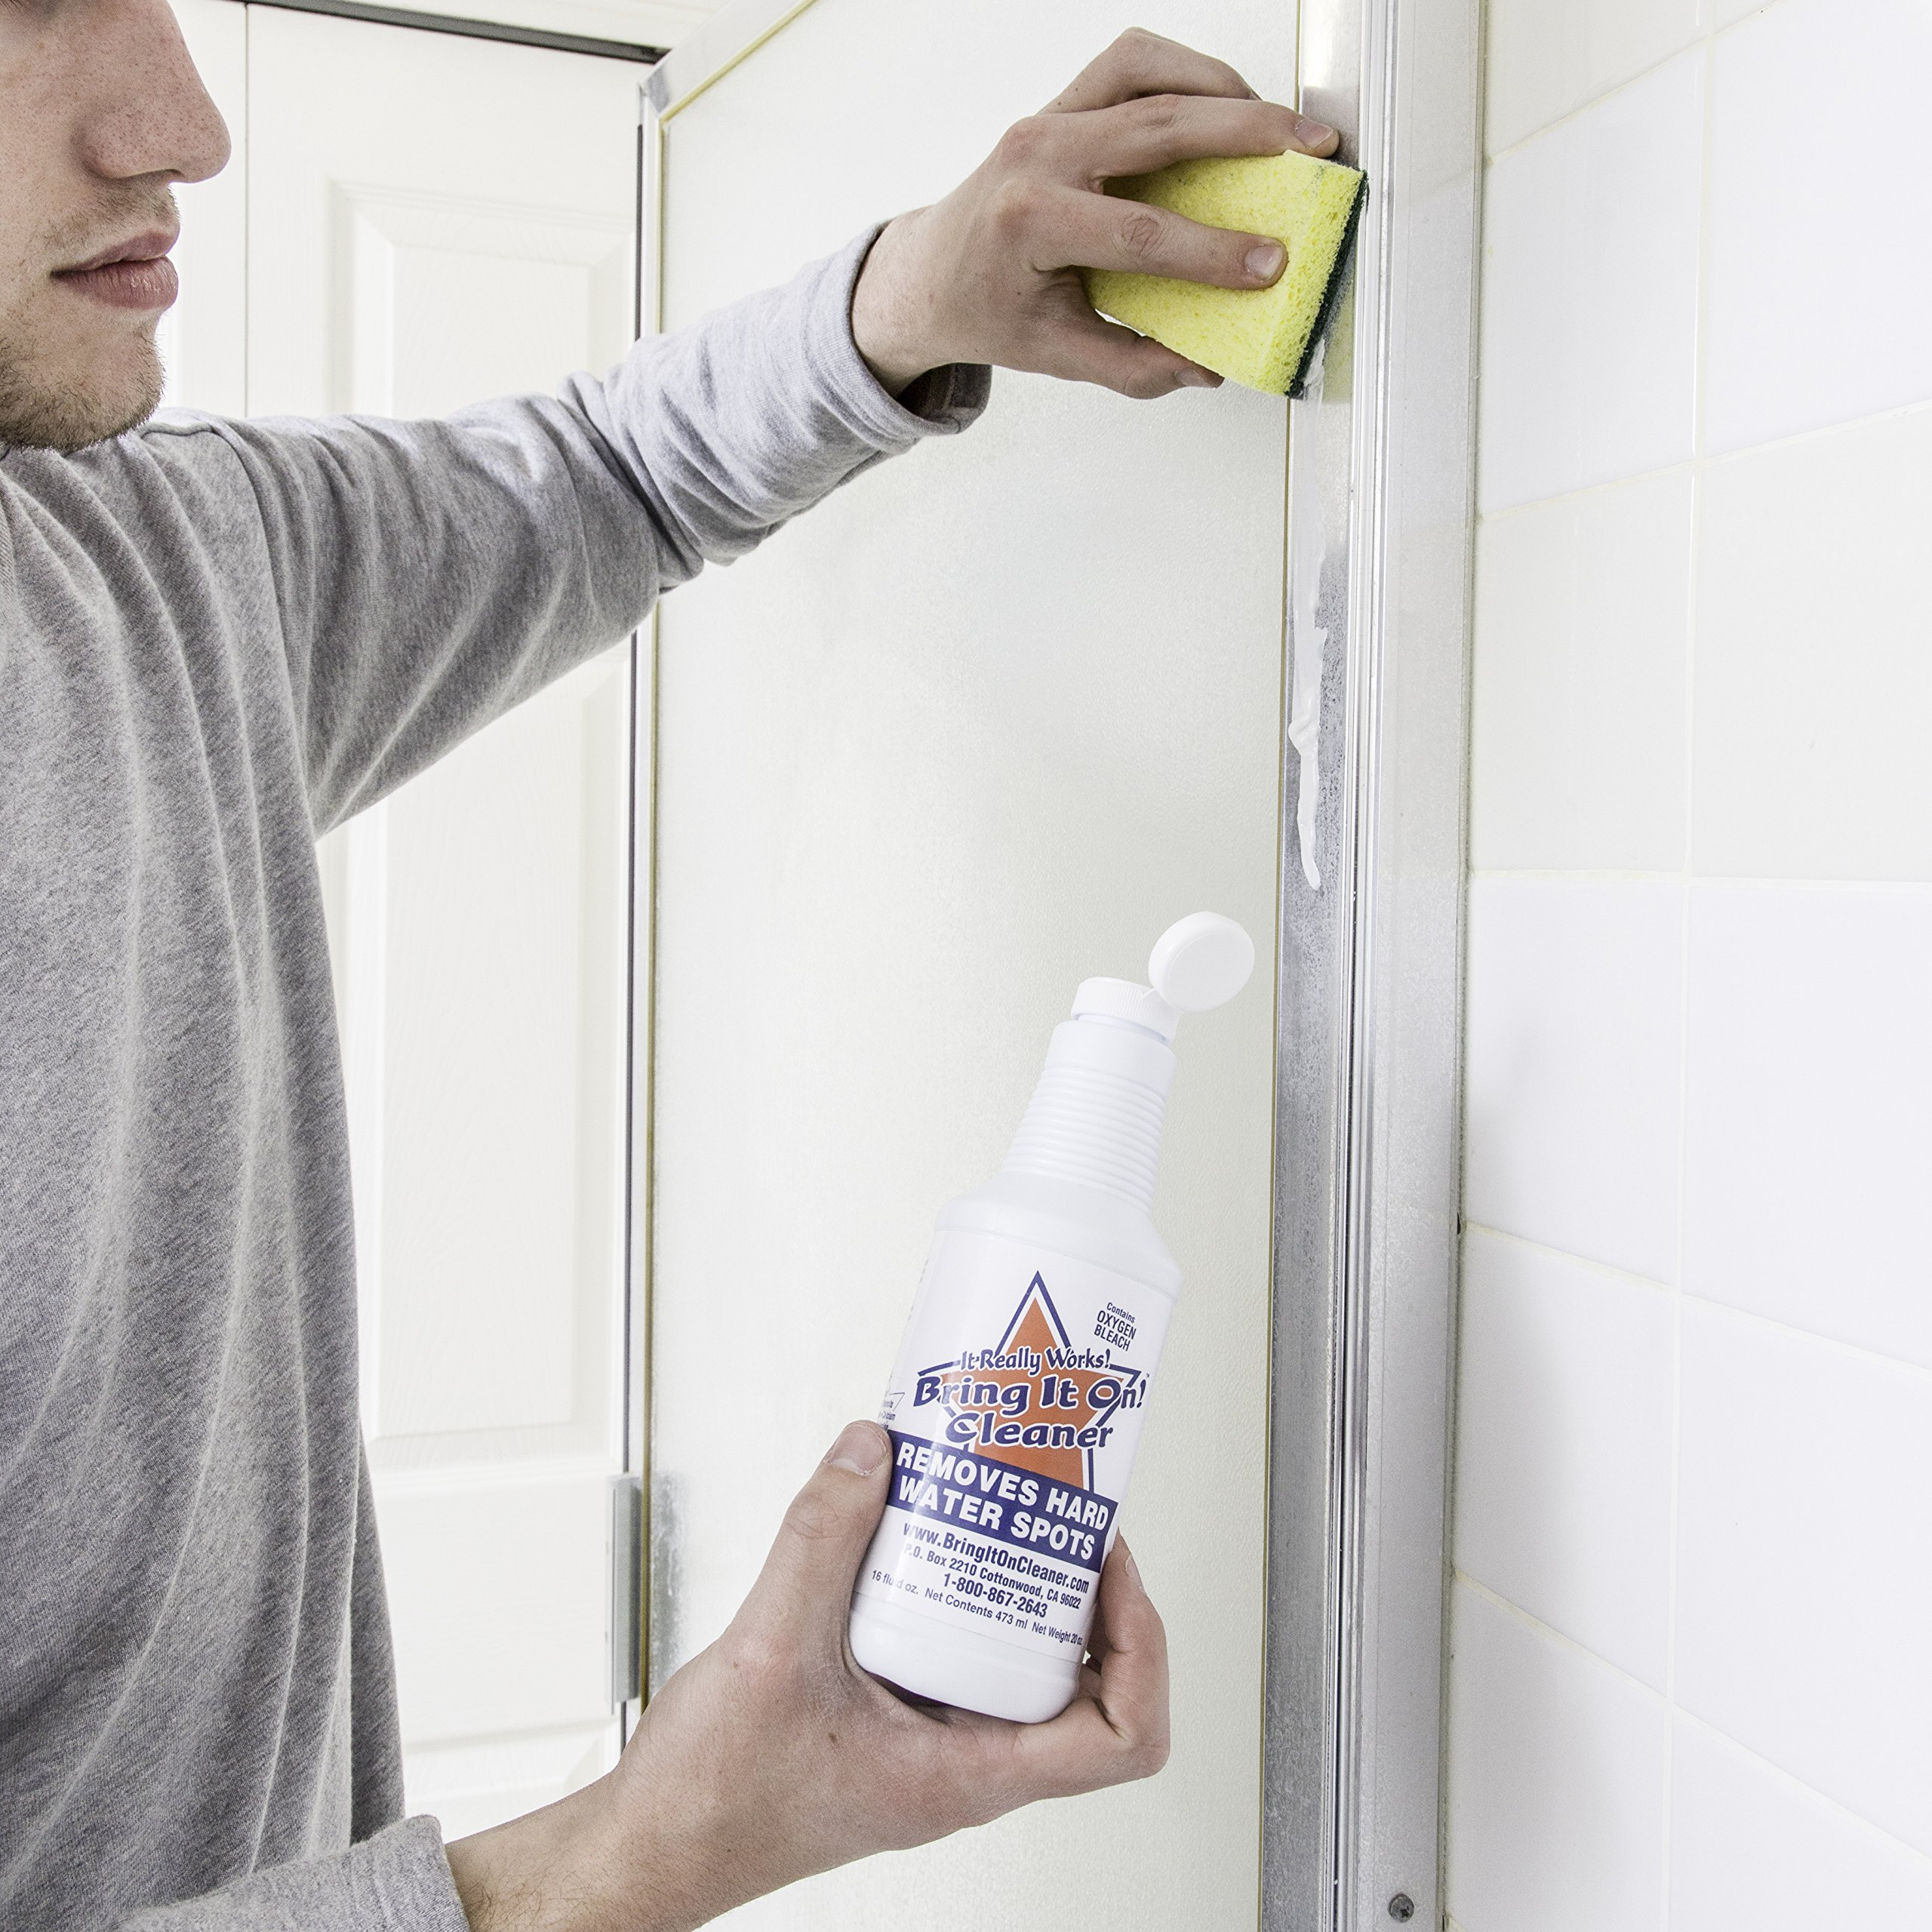 Bring It On Cleaner Shower Door Hard Water Spot Stain Remover With